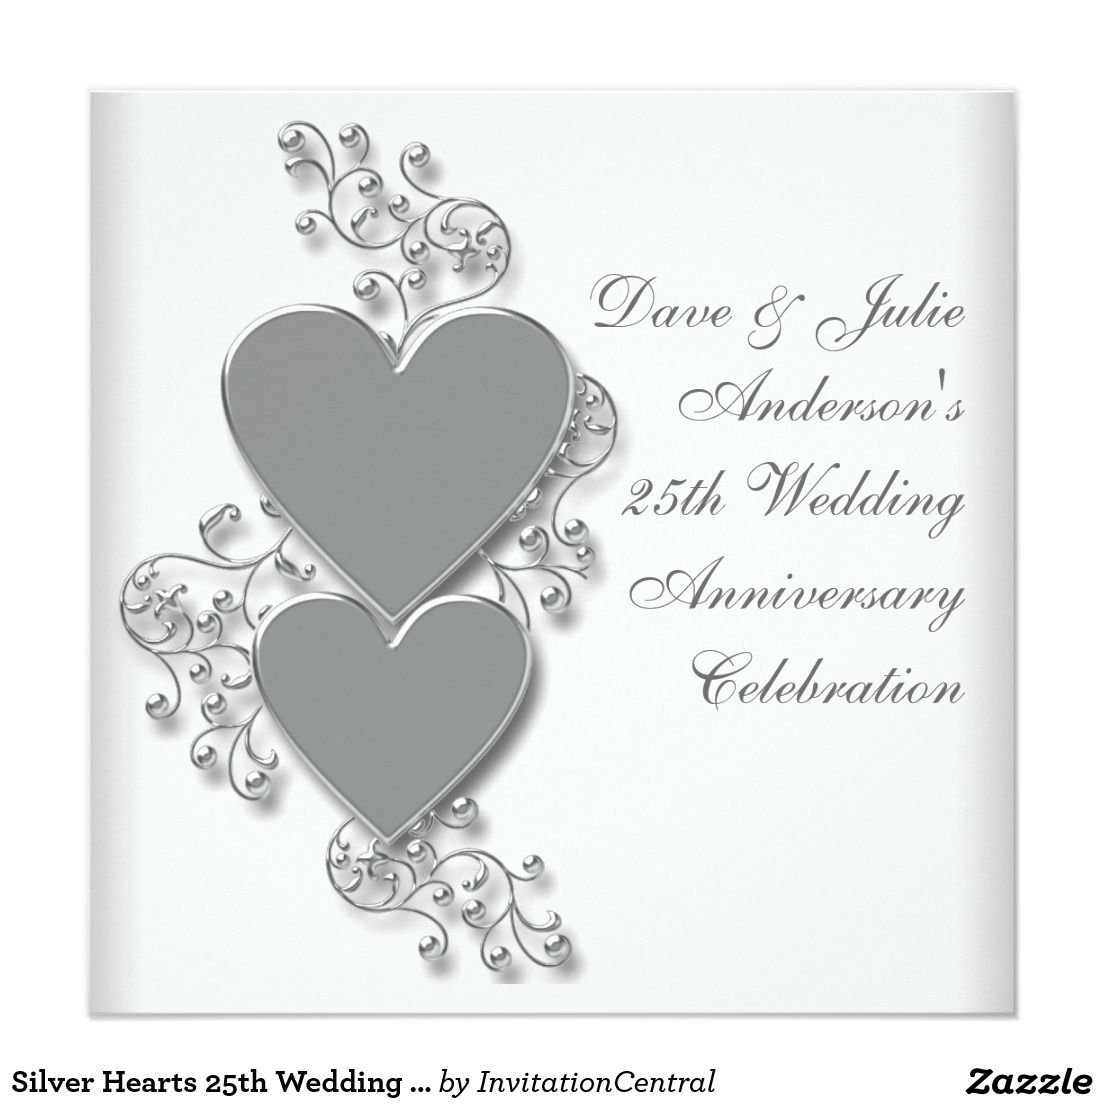 Pin by sharon haynes on Greeting Cards | Pinterest | 50th ...